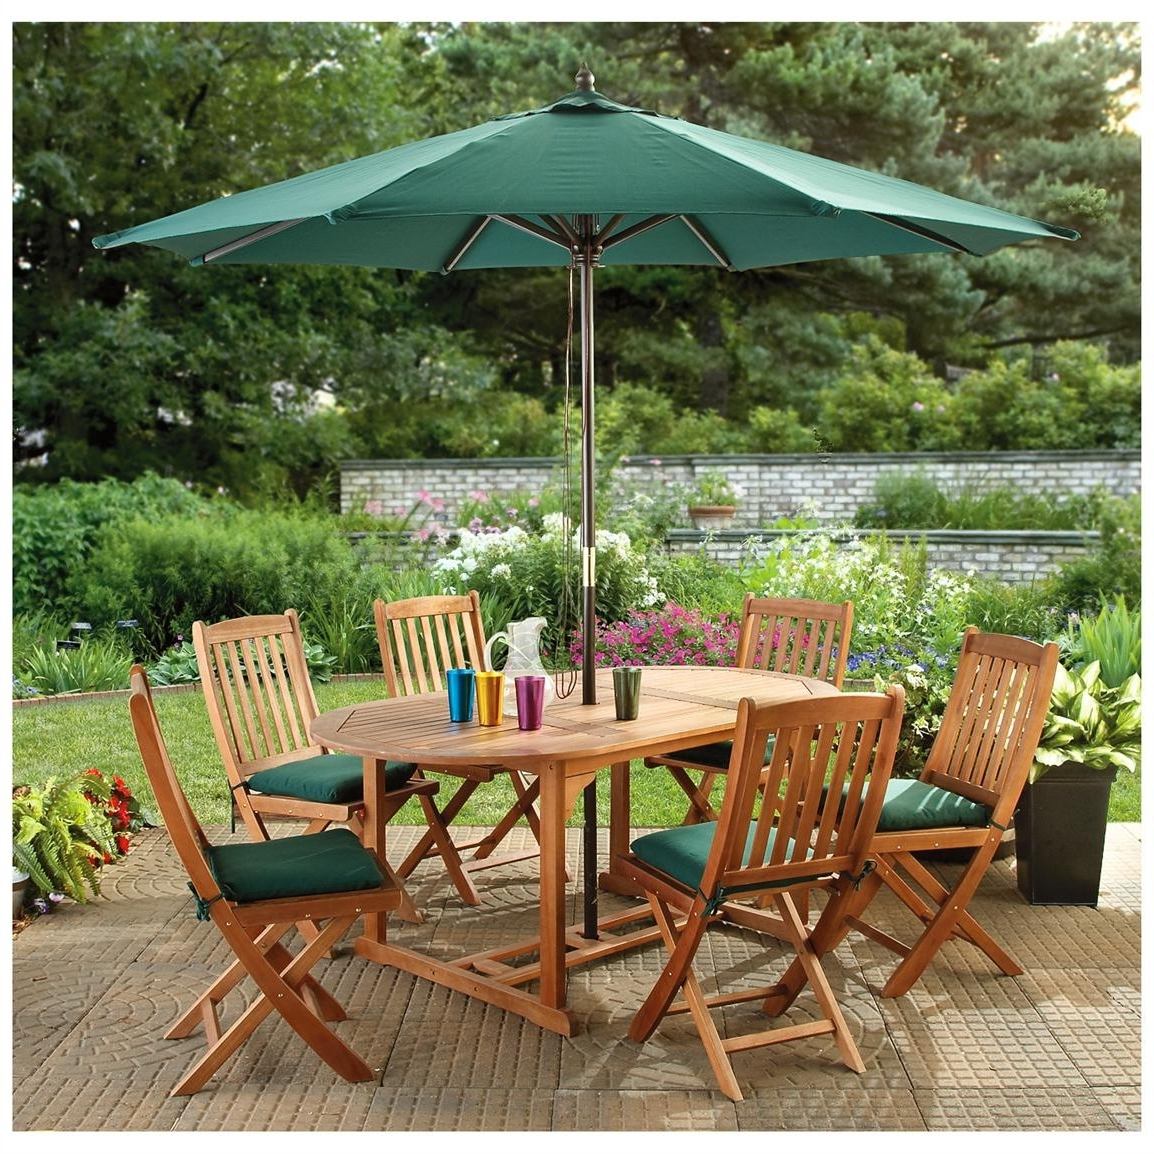 Patio: Awesome Umbrella Patio Set Frontgate Outdoor Furniture For Fashionable Walmart Patio Umbrellas (View 19 of 20)